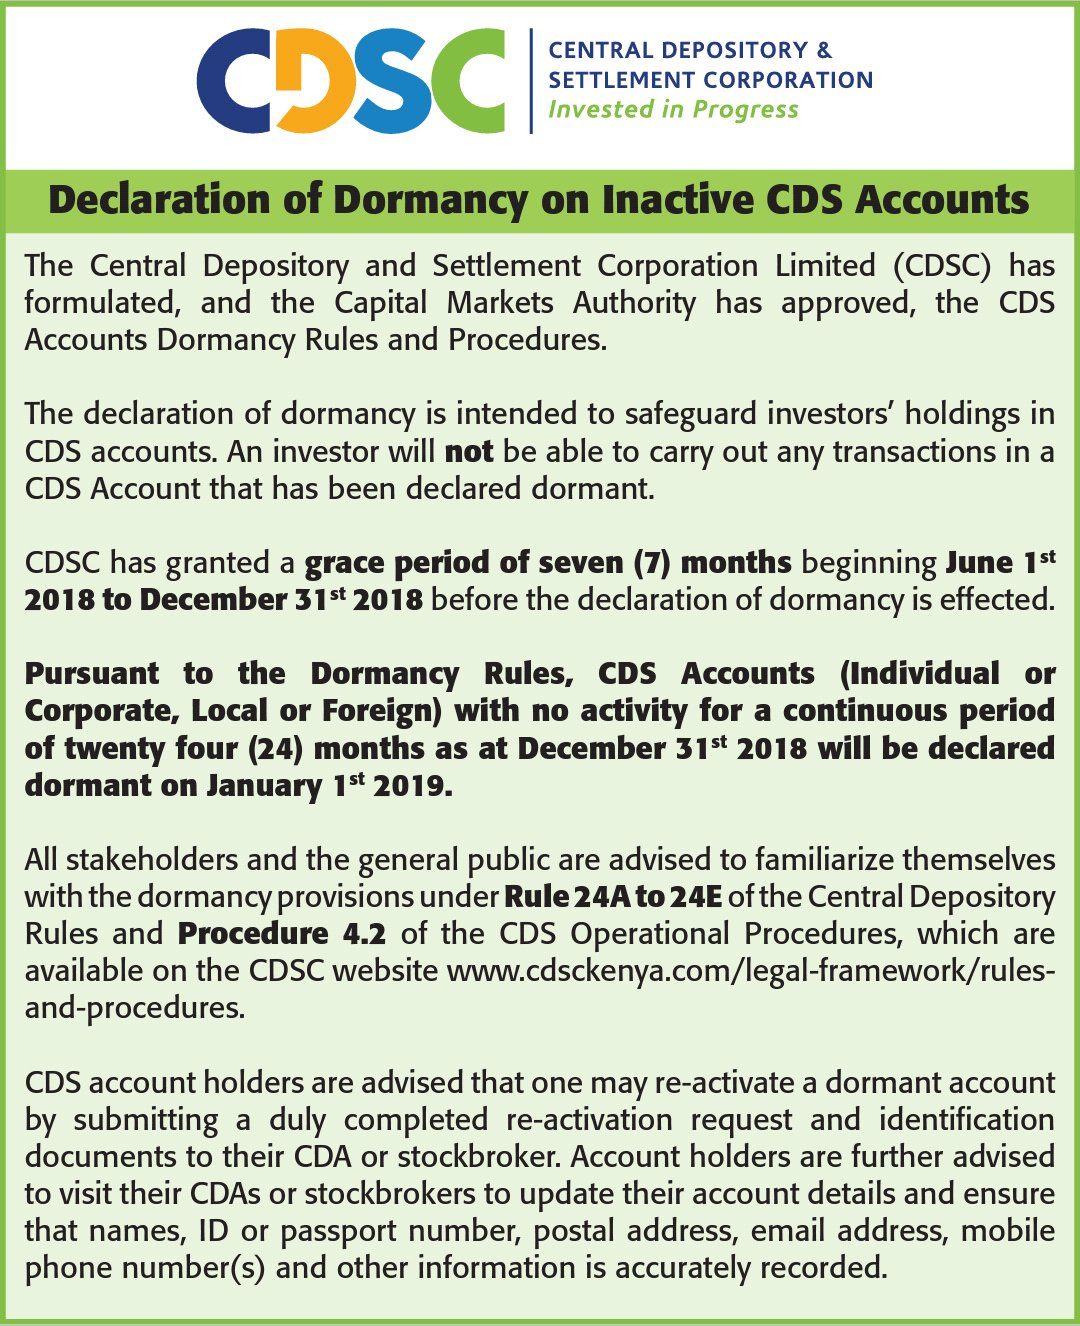 Declaration of Dormancy on Inactive CDS Accounts | Daly & Inamdar